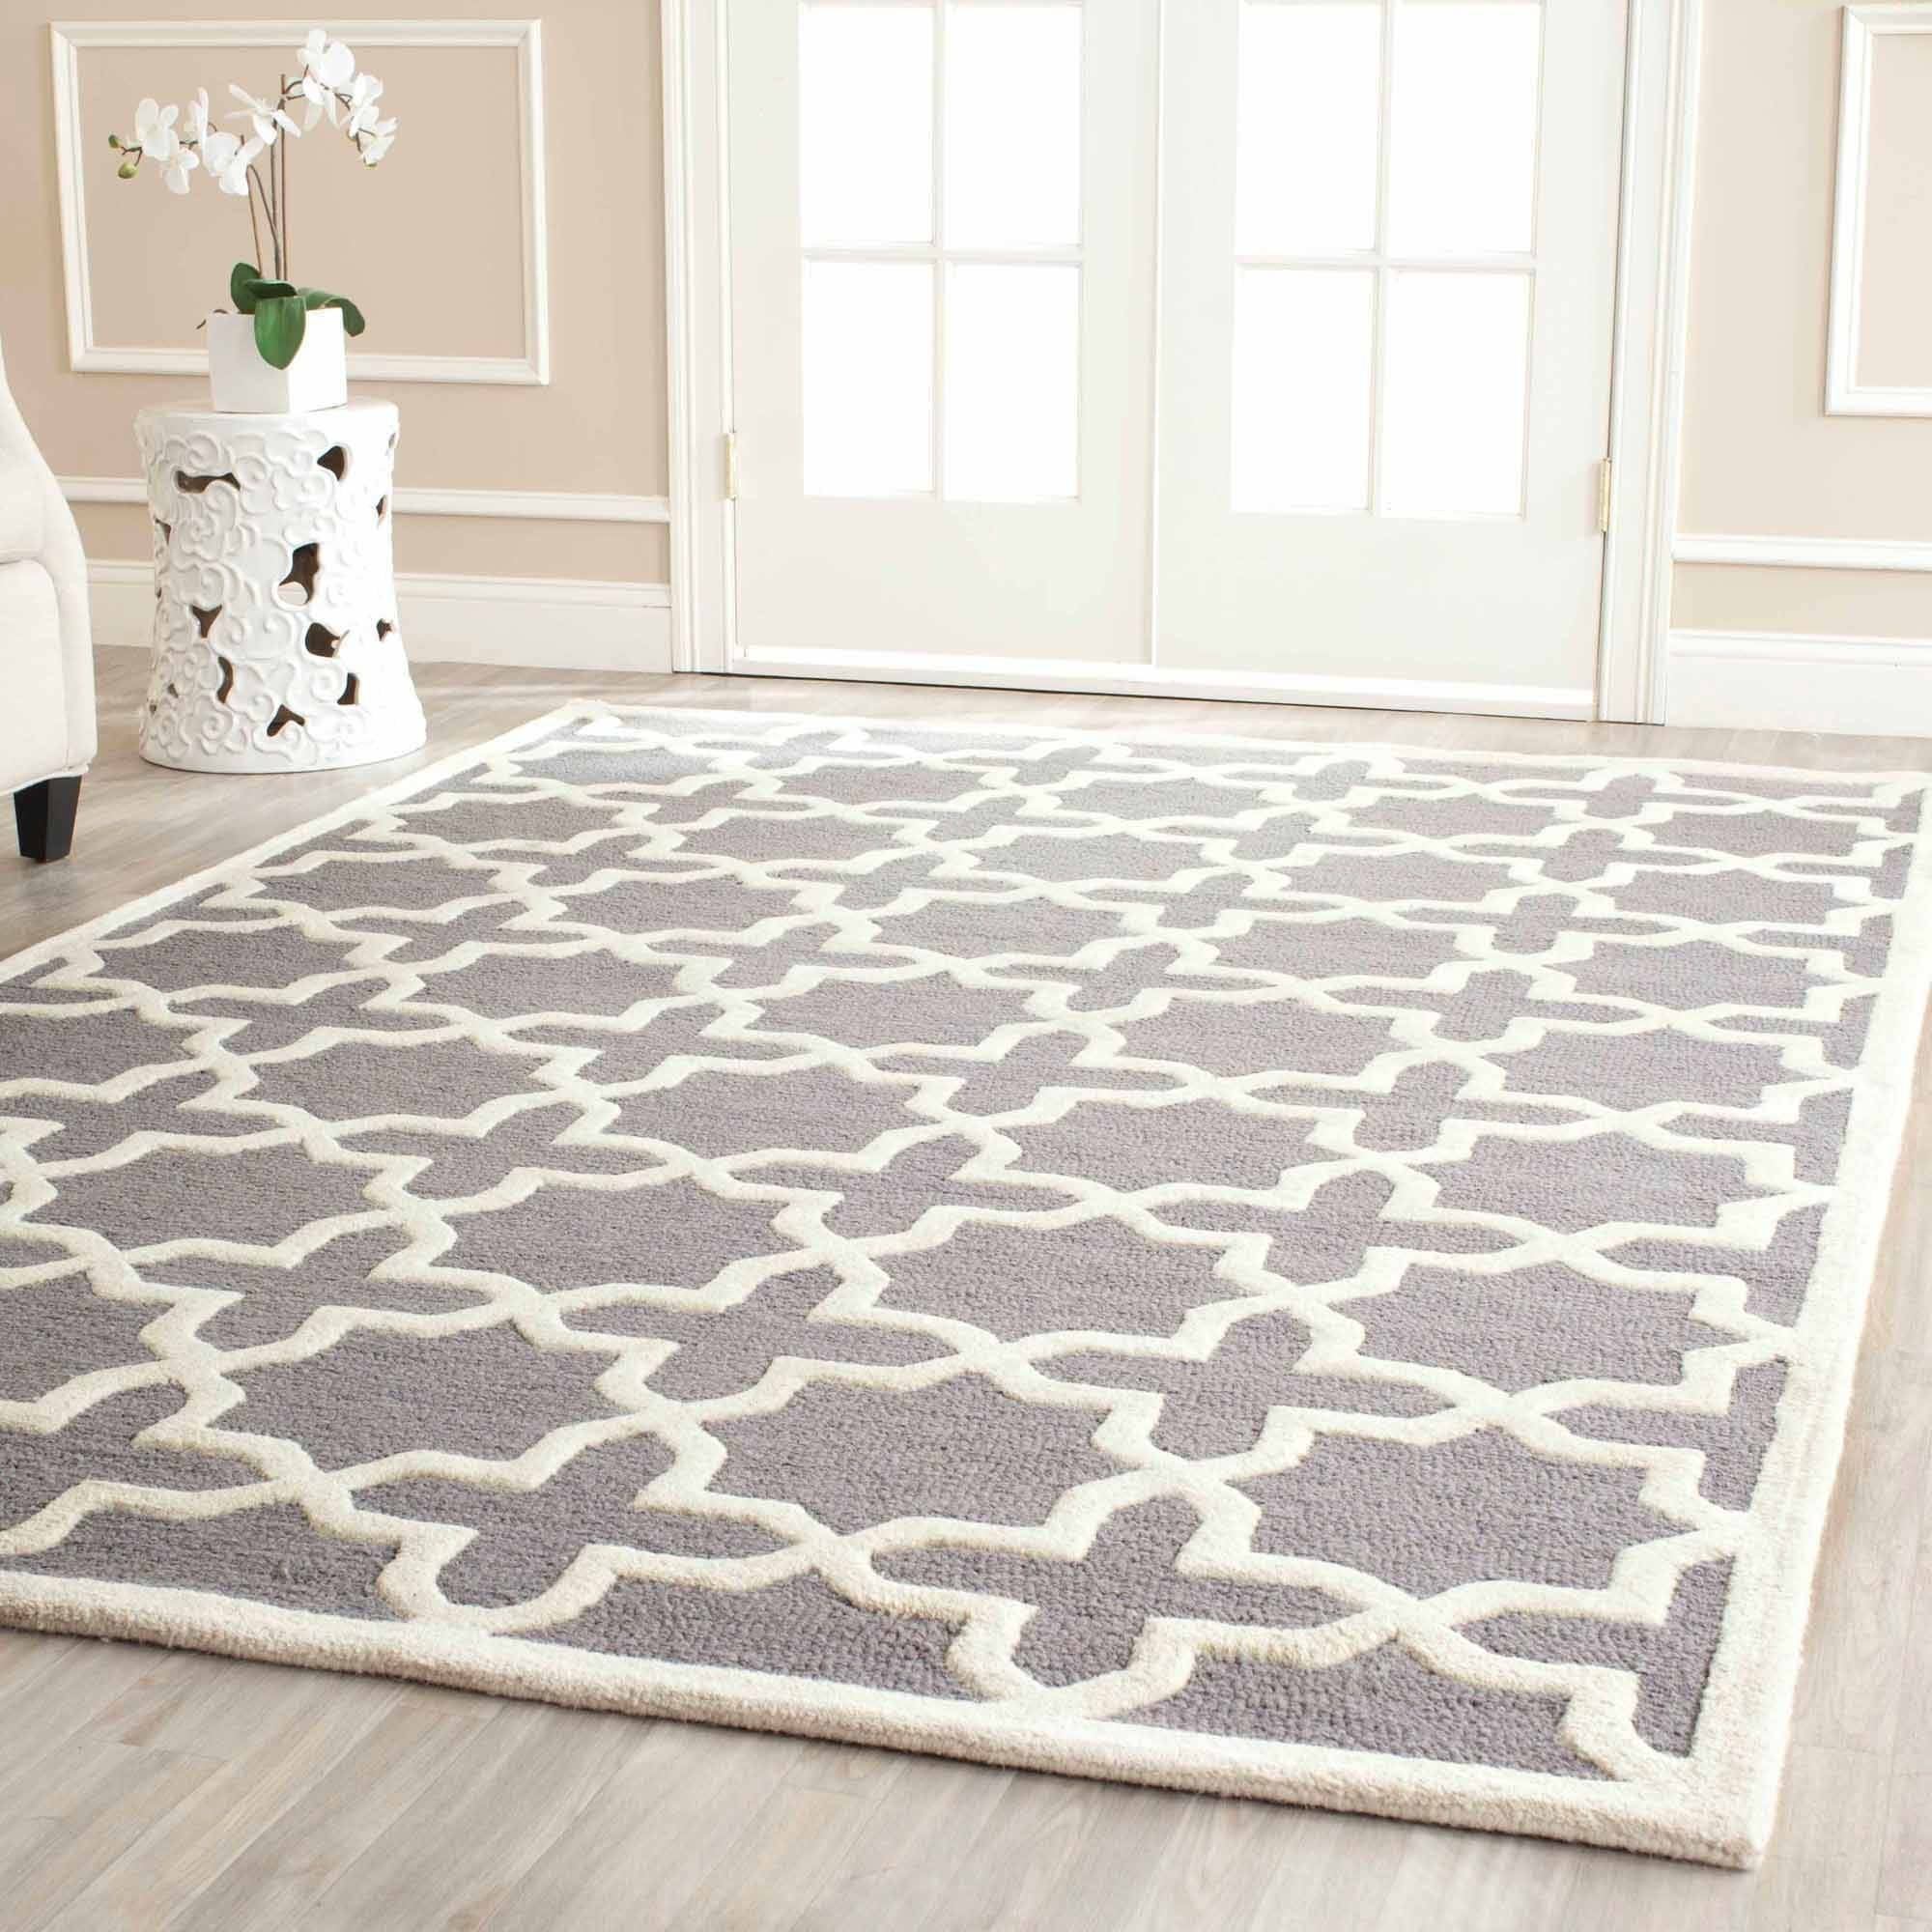 wool area rugs safavieh cambridge liz hand tufted wool area rug or runner DWWFQDB